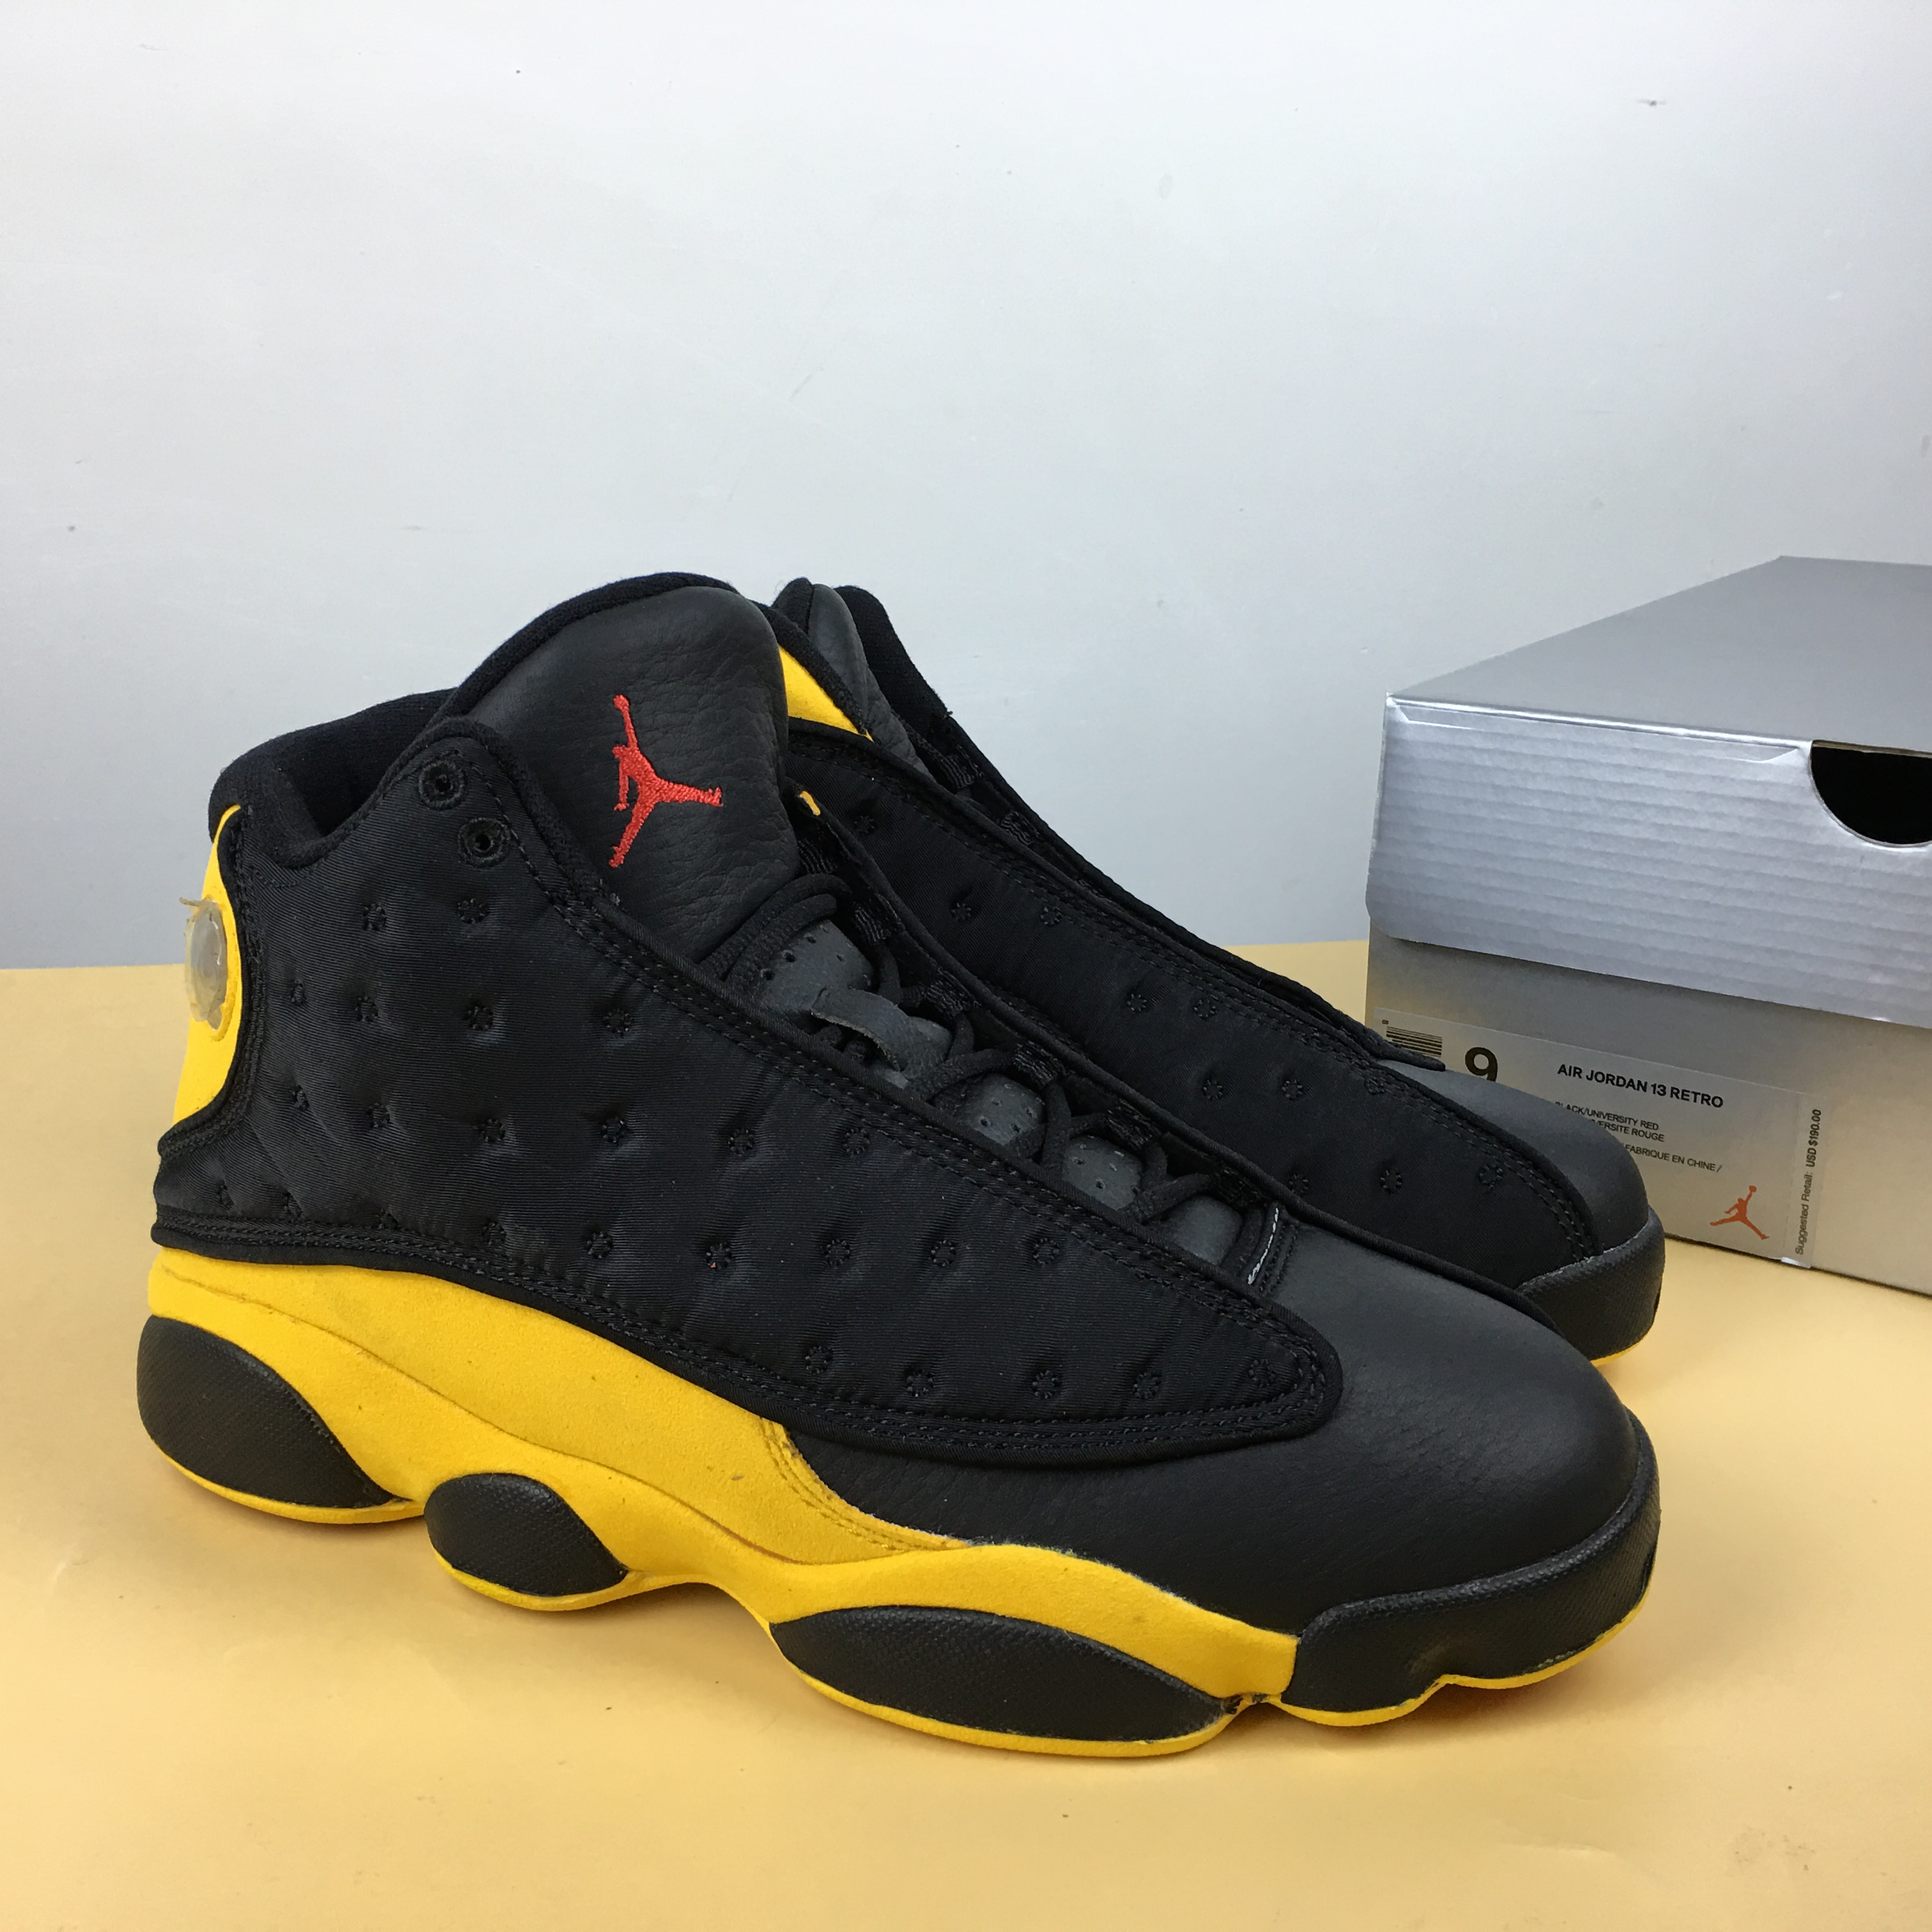 Air Jordan 13 Melo Class of 2003 Black Yellow Red Shoes